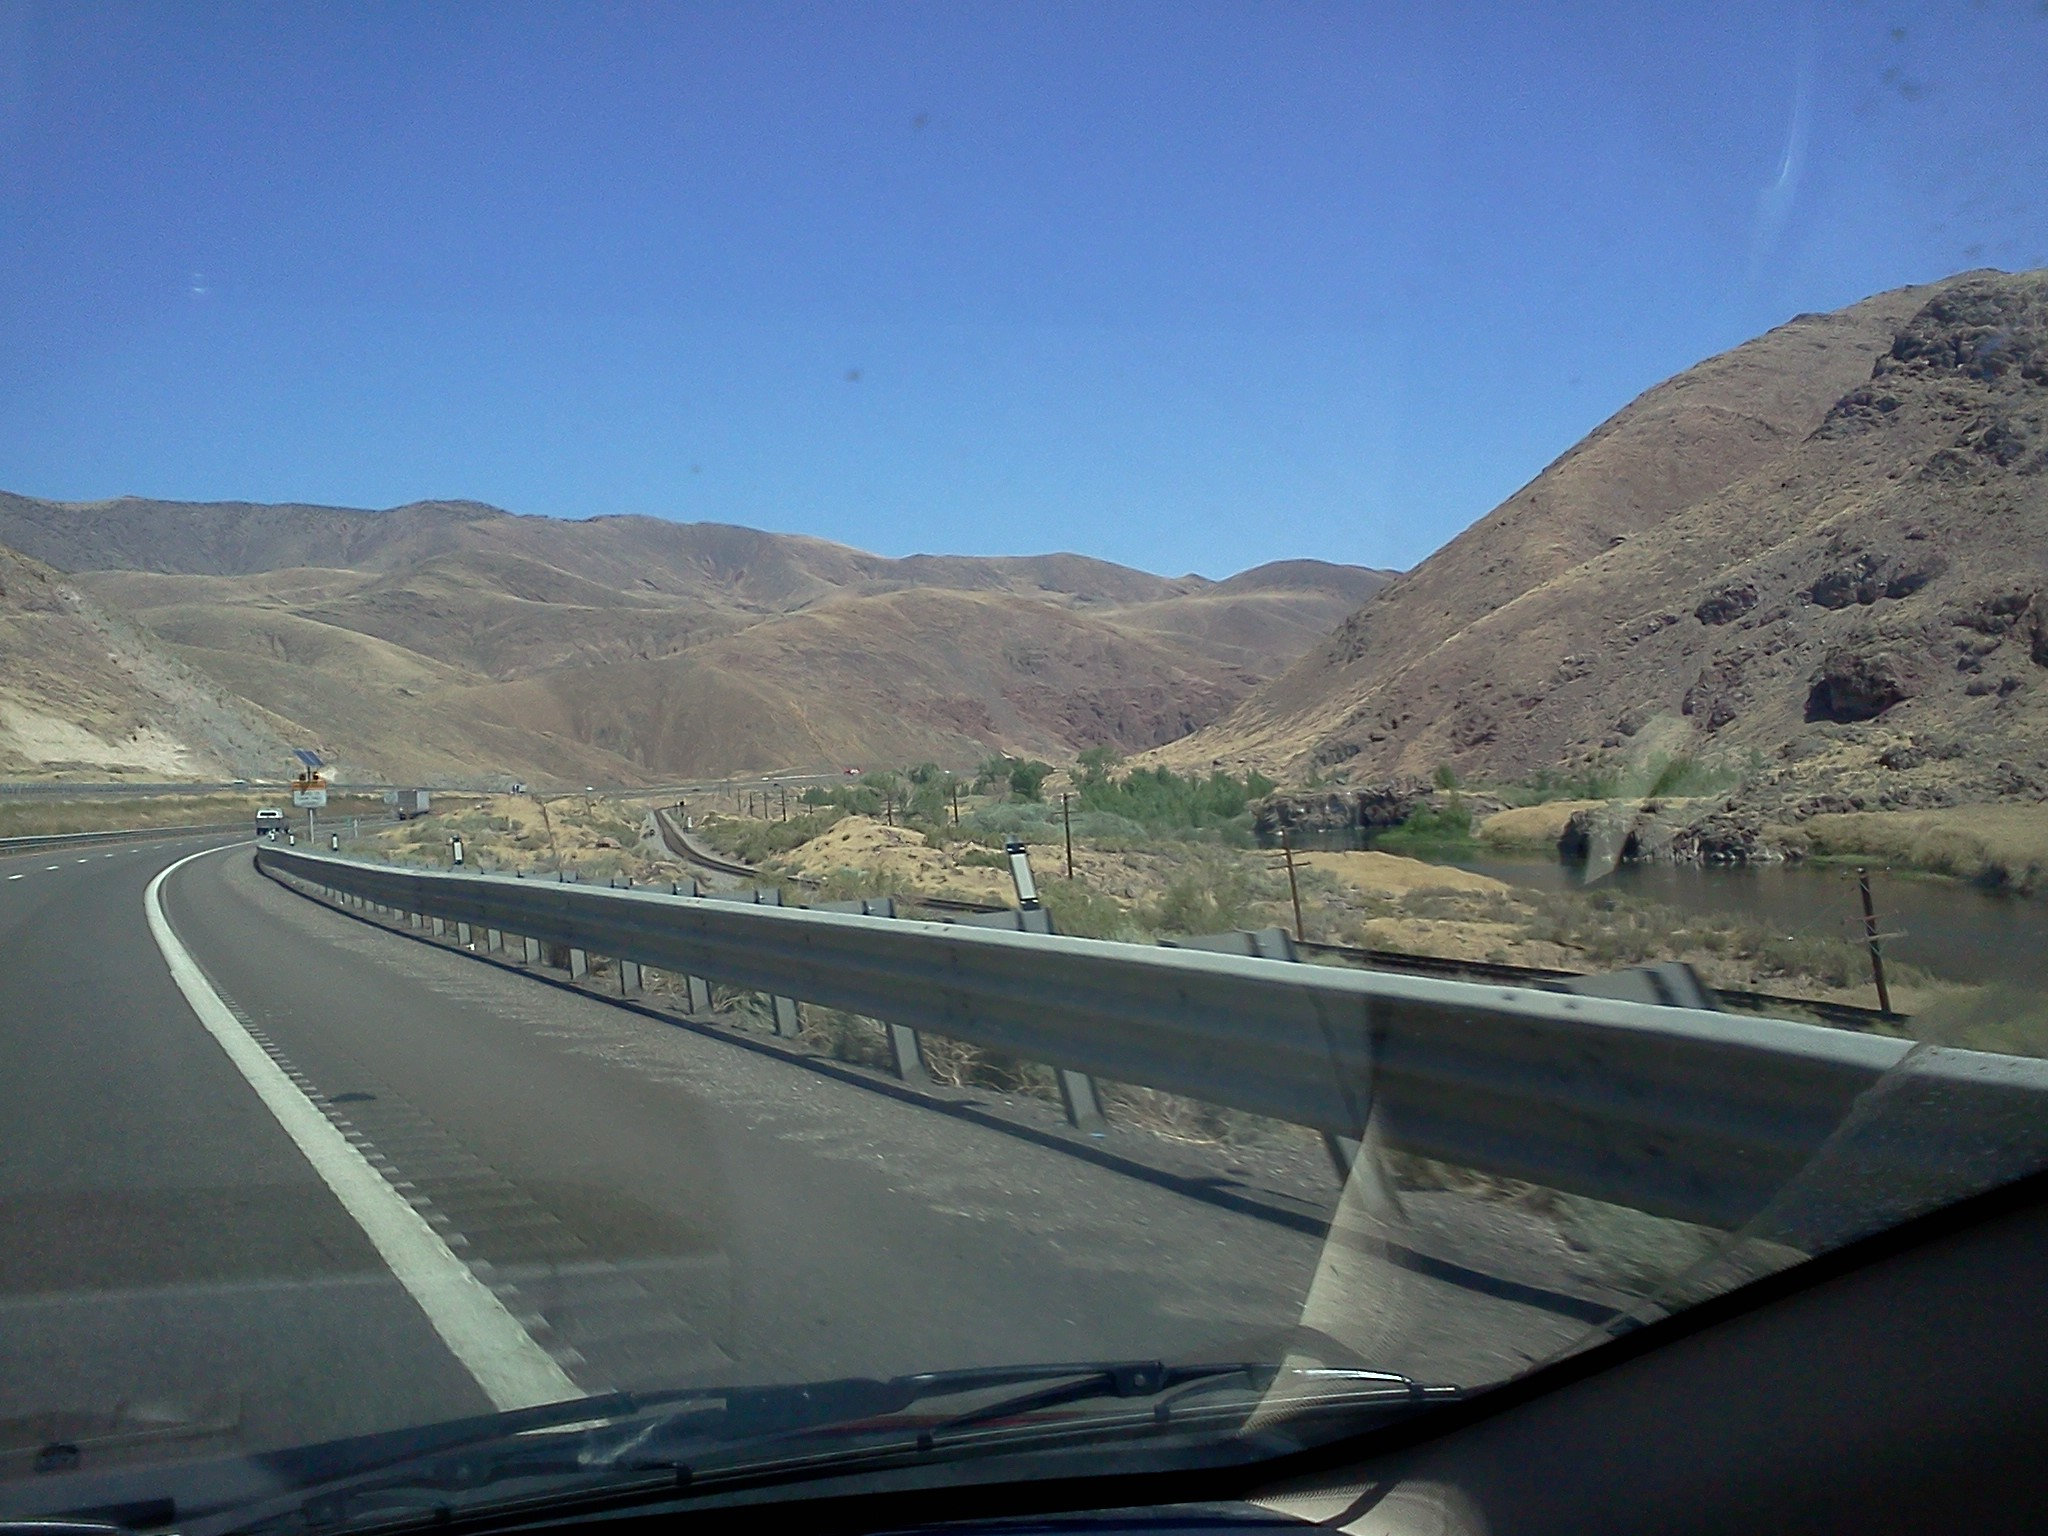 On the road to Burning Man, August 2011